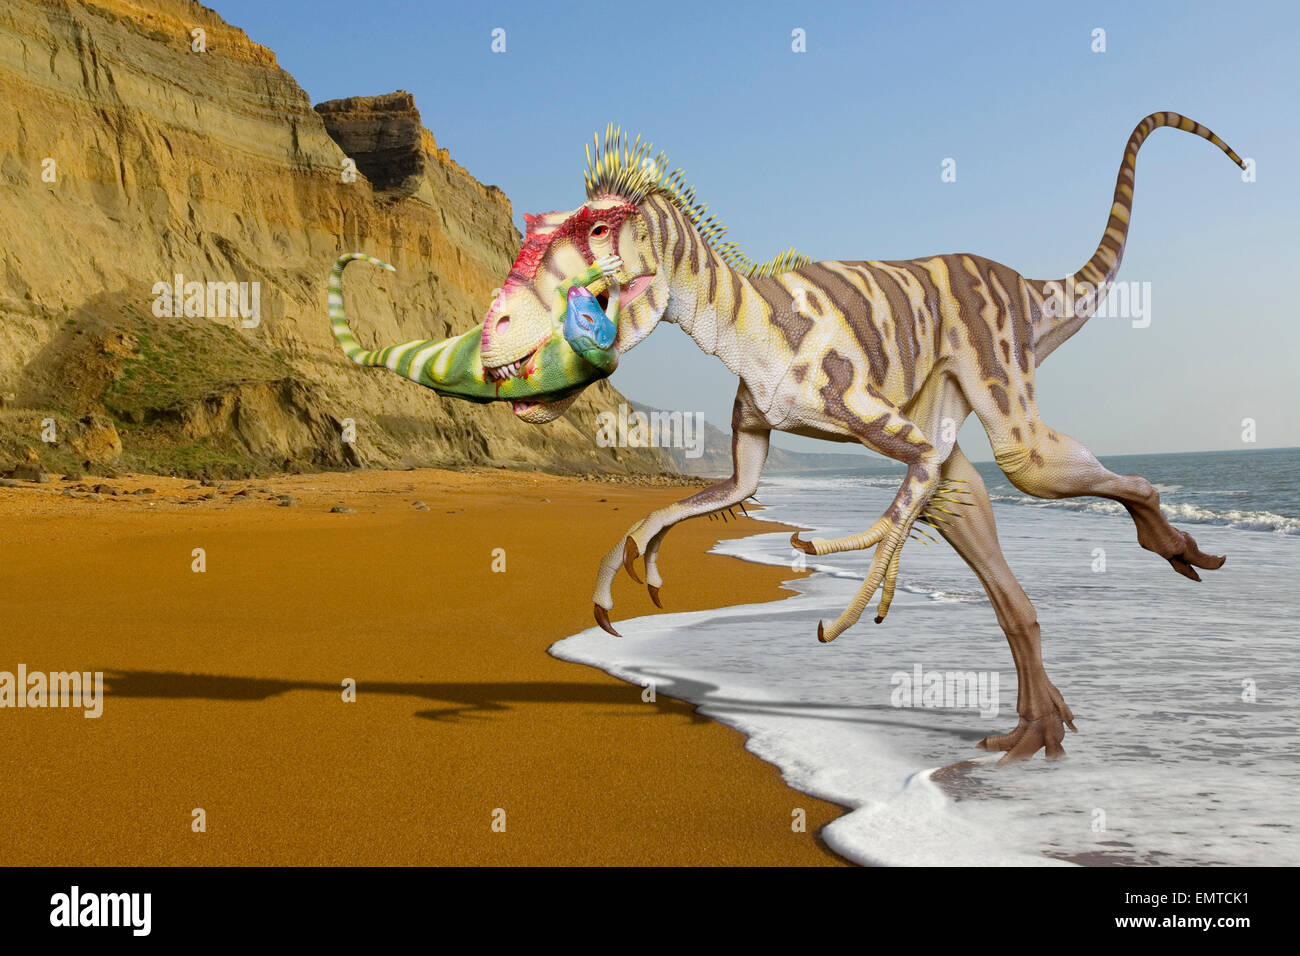 Photoshop Montage. Of Eotyrannus dinosaur on Chale Beach Isle of Wight England, an area where fossils of this species - Stock Image